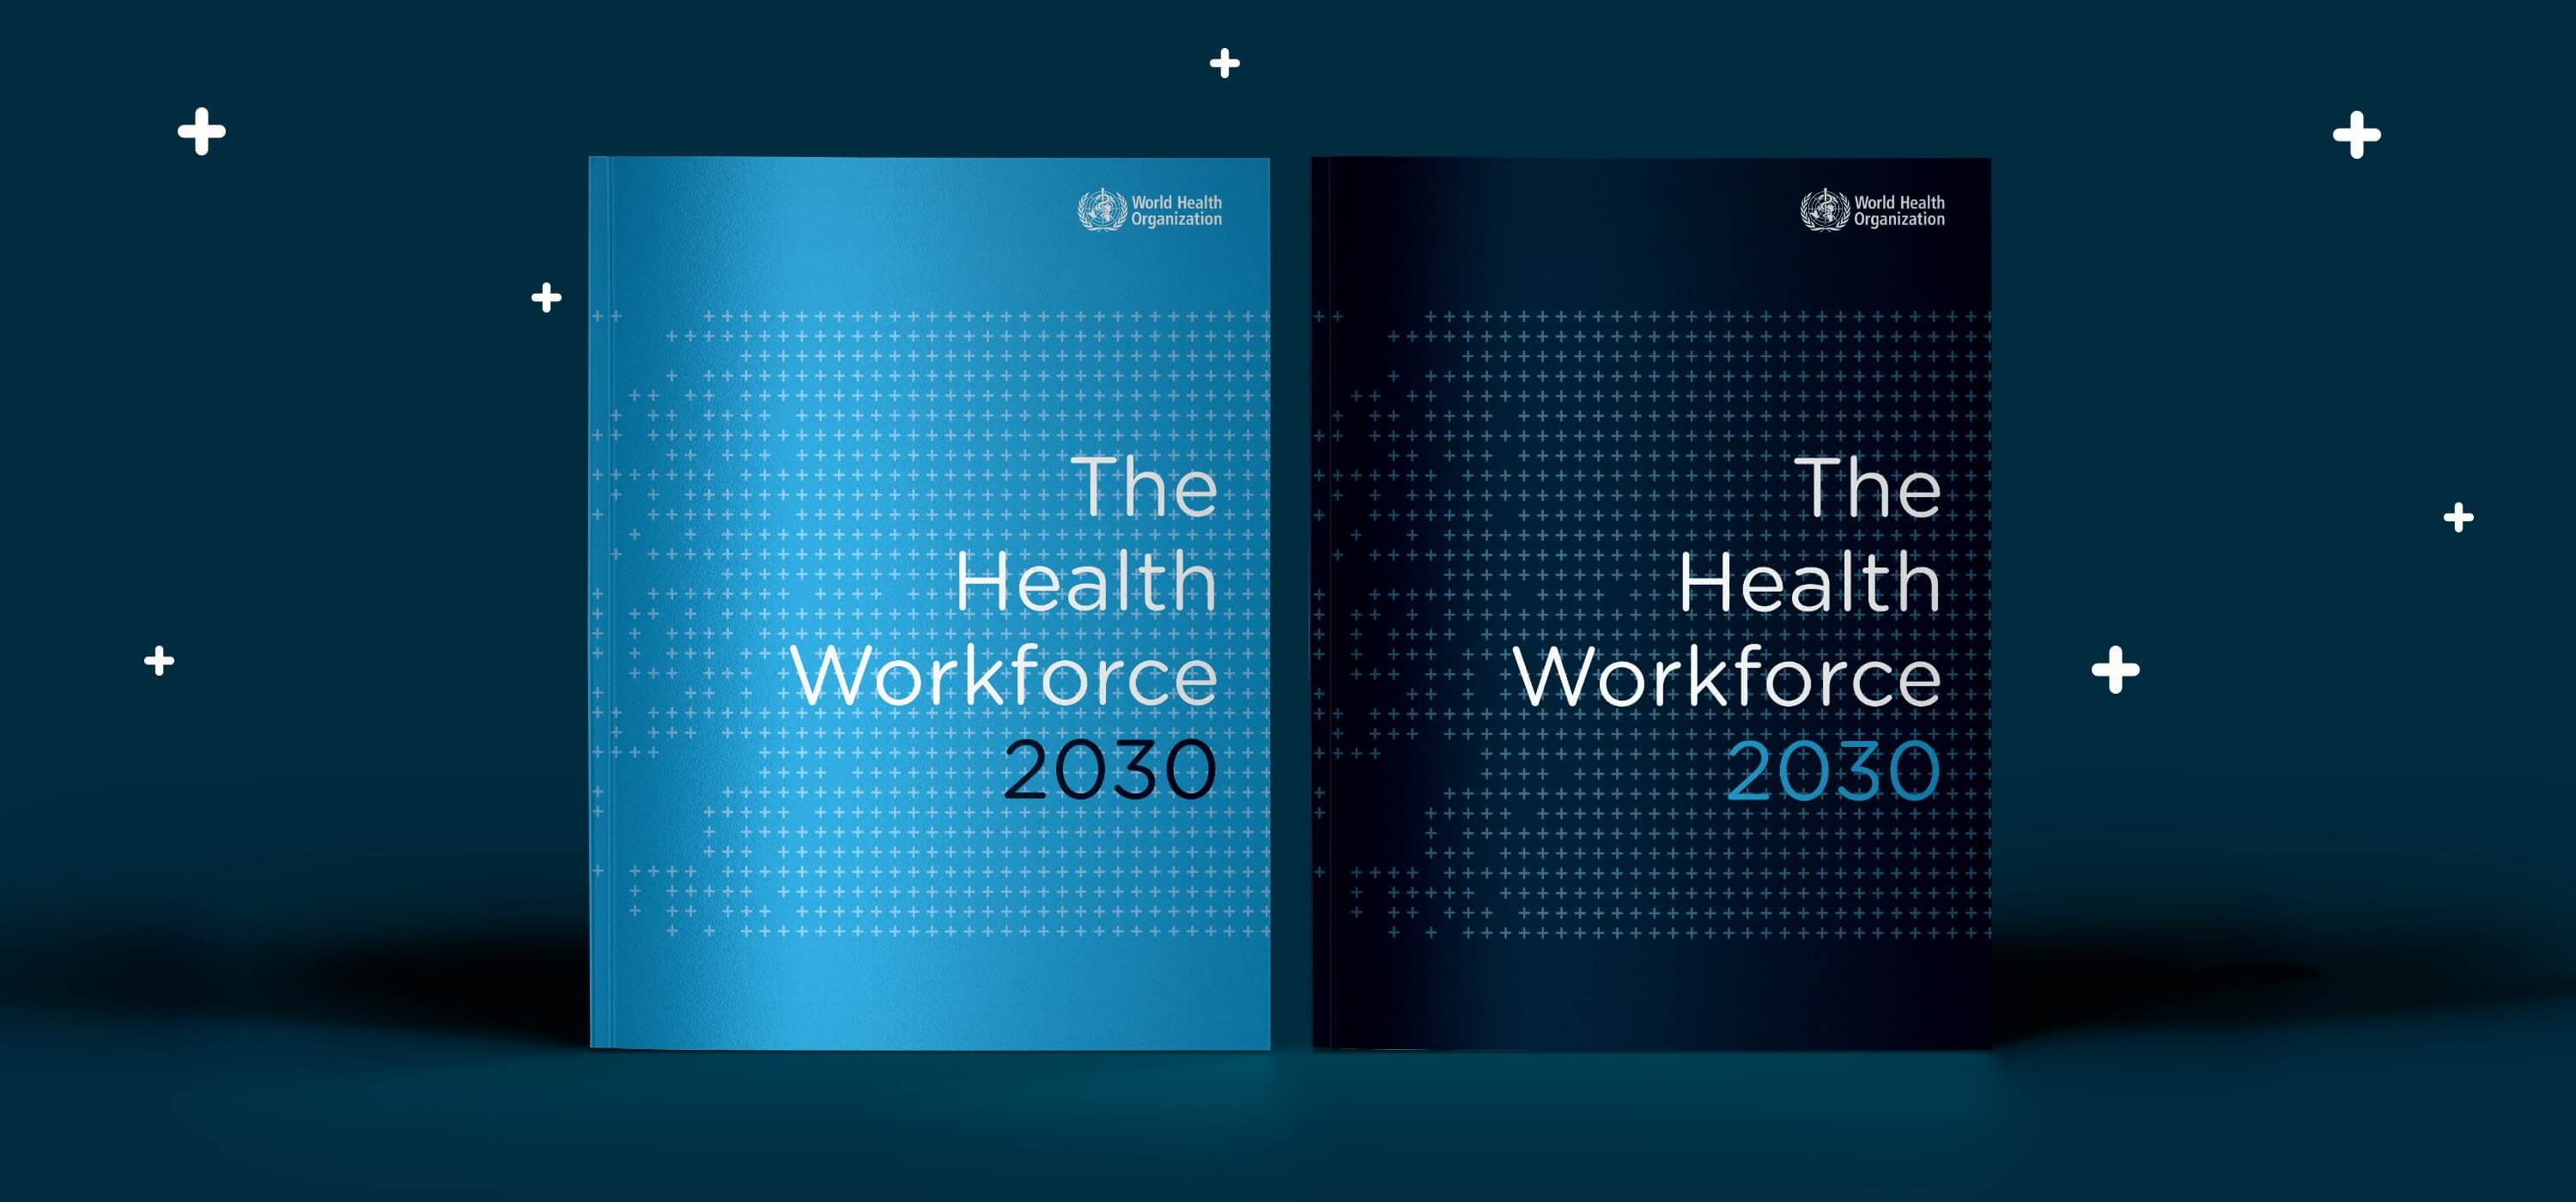 World Health Organization - Health Work Force - Blossom